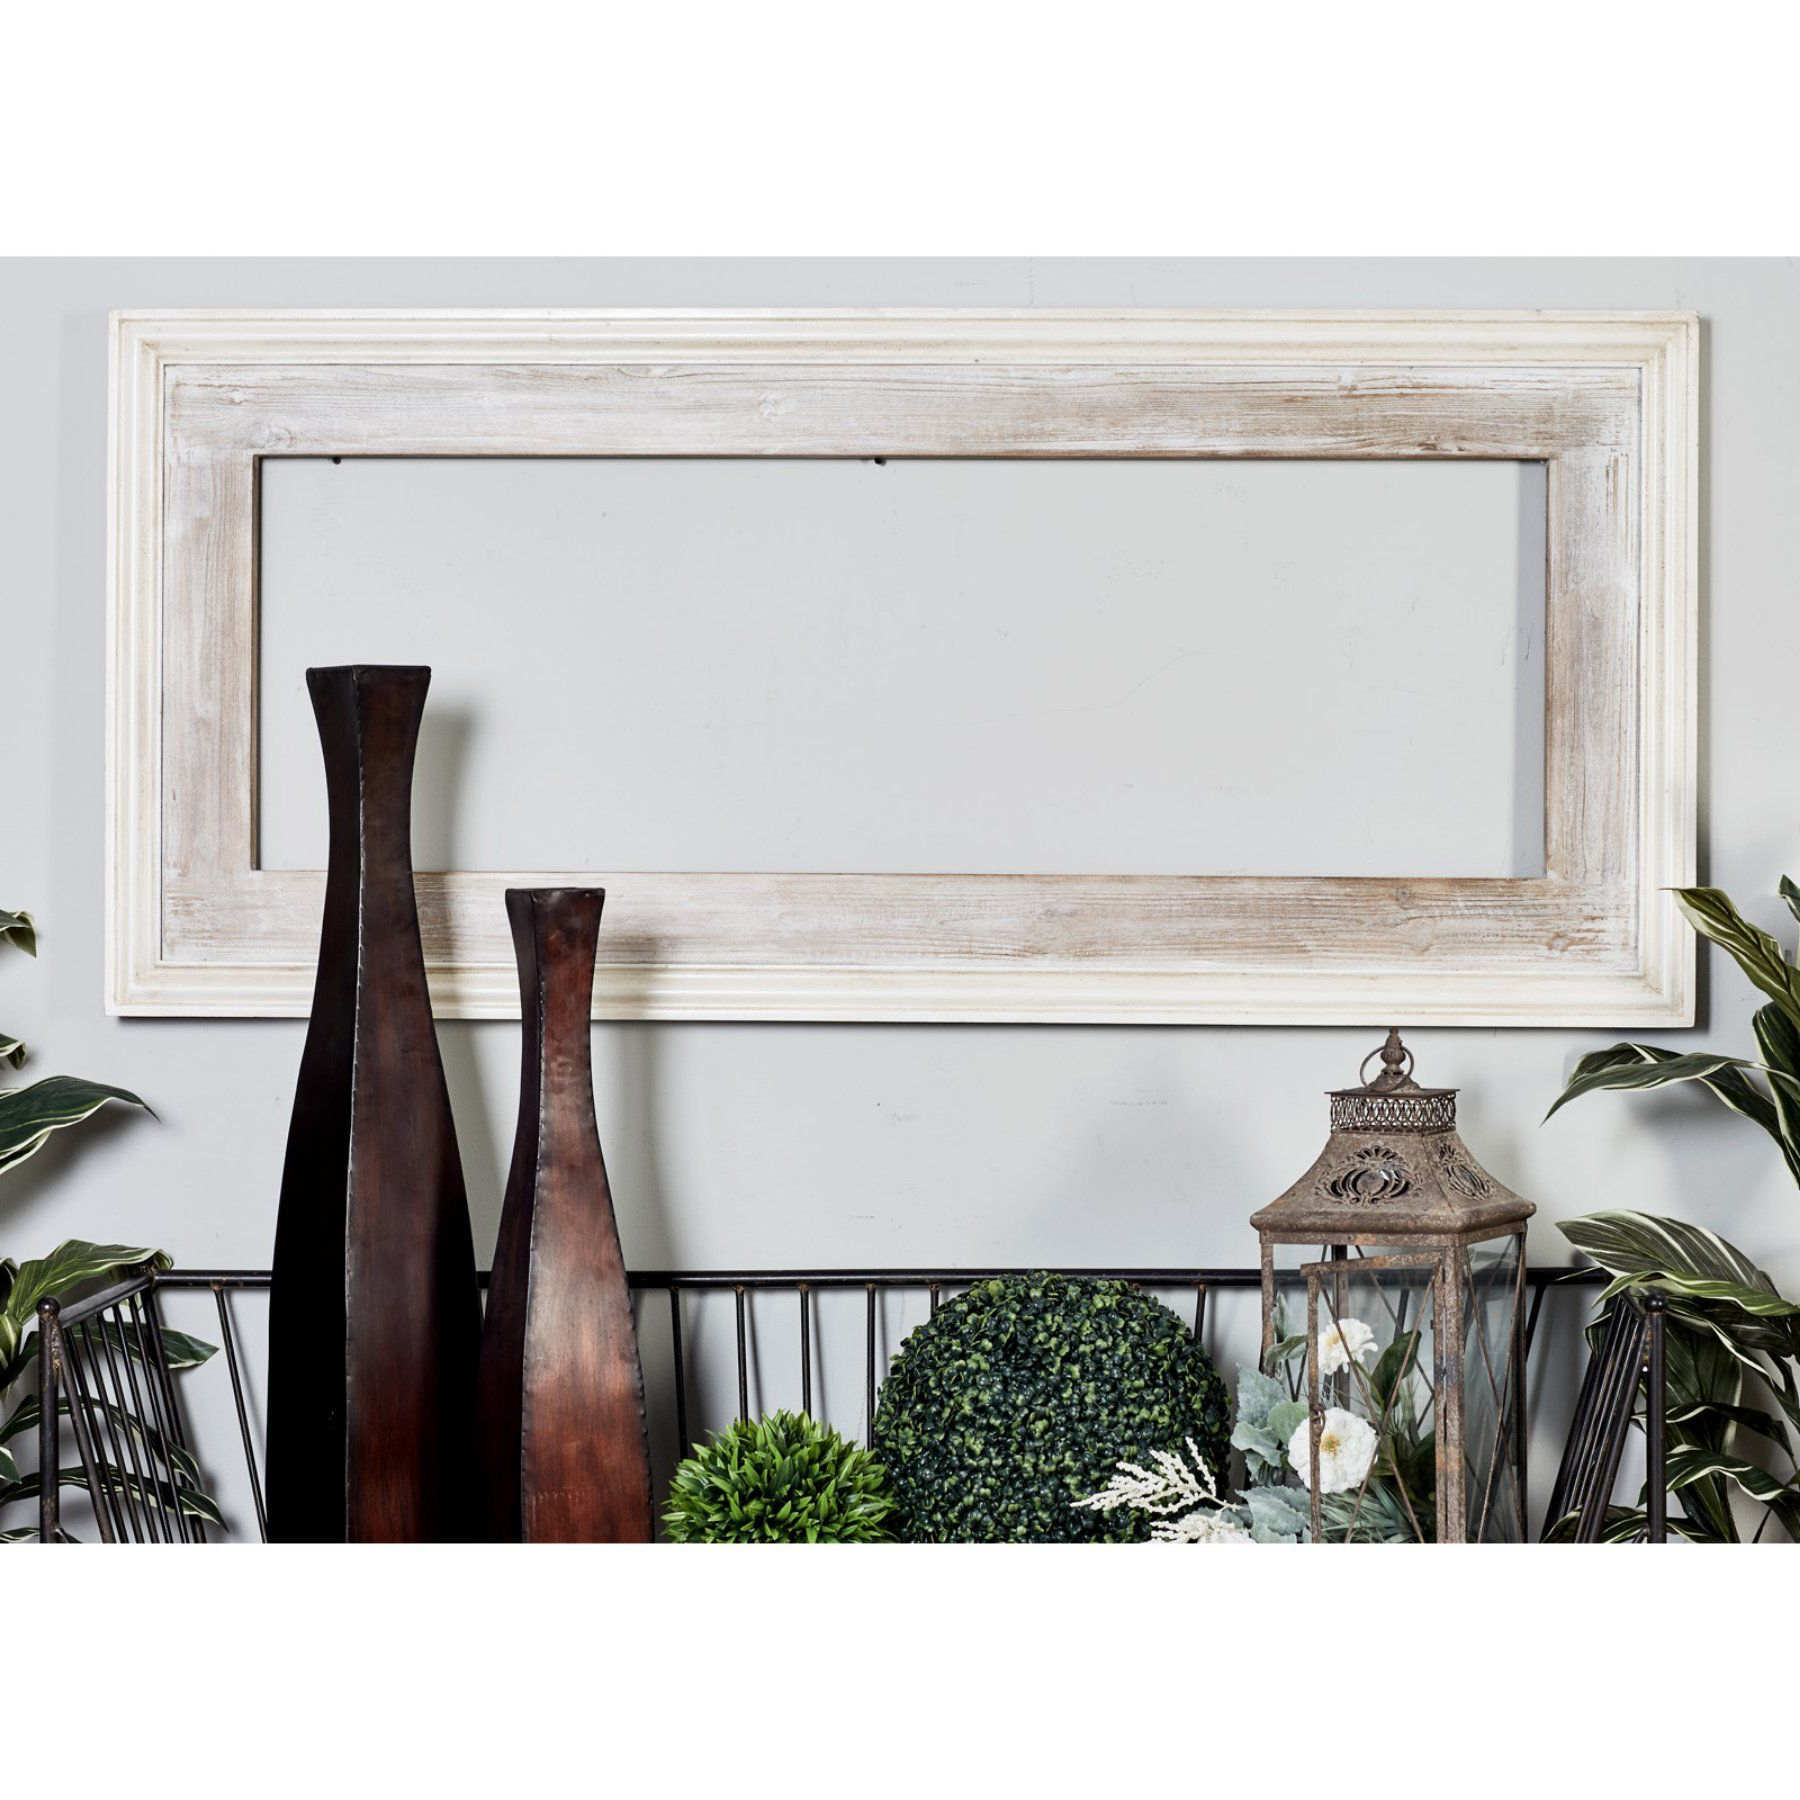 2 Piece Priscilla Square Traditional Beveled Distressed Accent Mirror Sets Inside Famous Decmode Wooden Rectangular Beveled Wall Mirror – 30W X 67H In (Gallery 16 of 20)